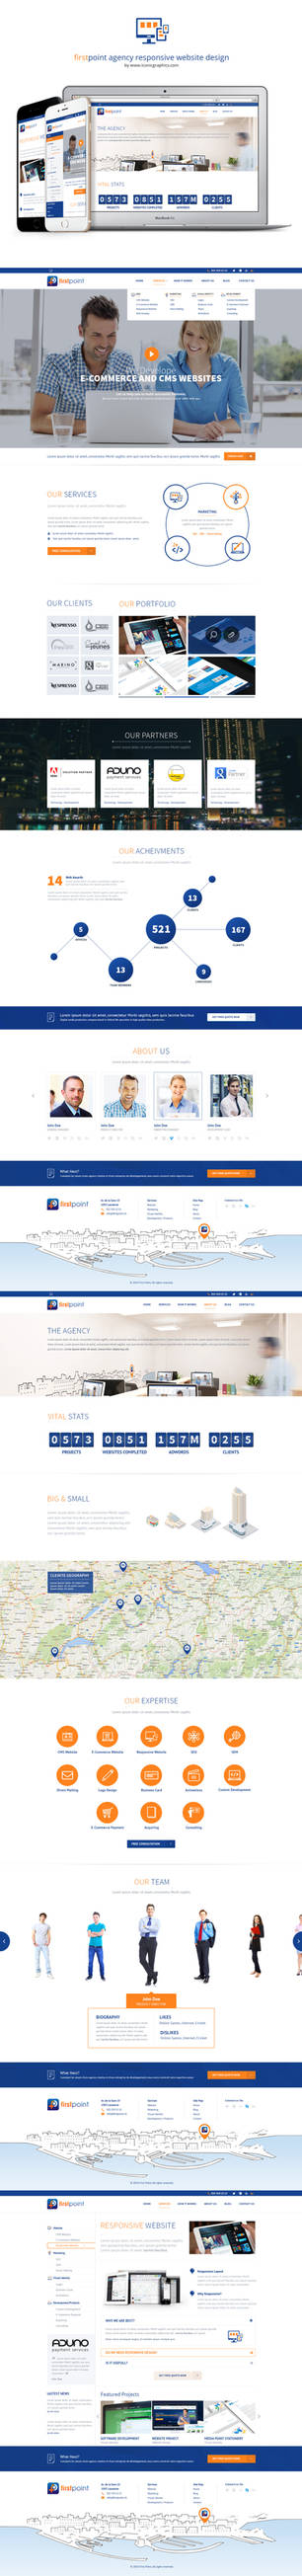 Firstpoint Agency Responsive Website Design